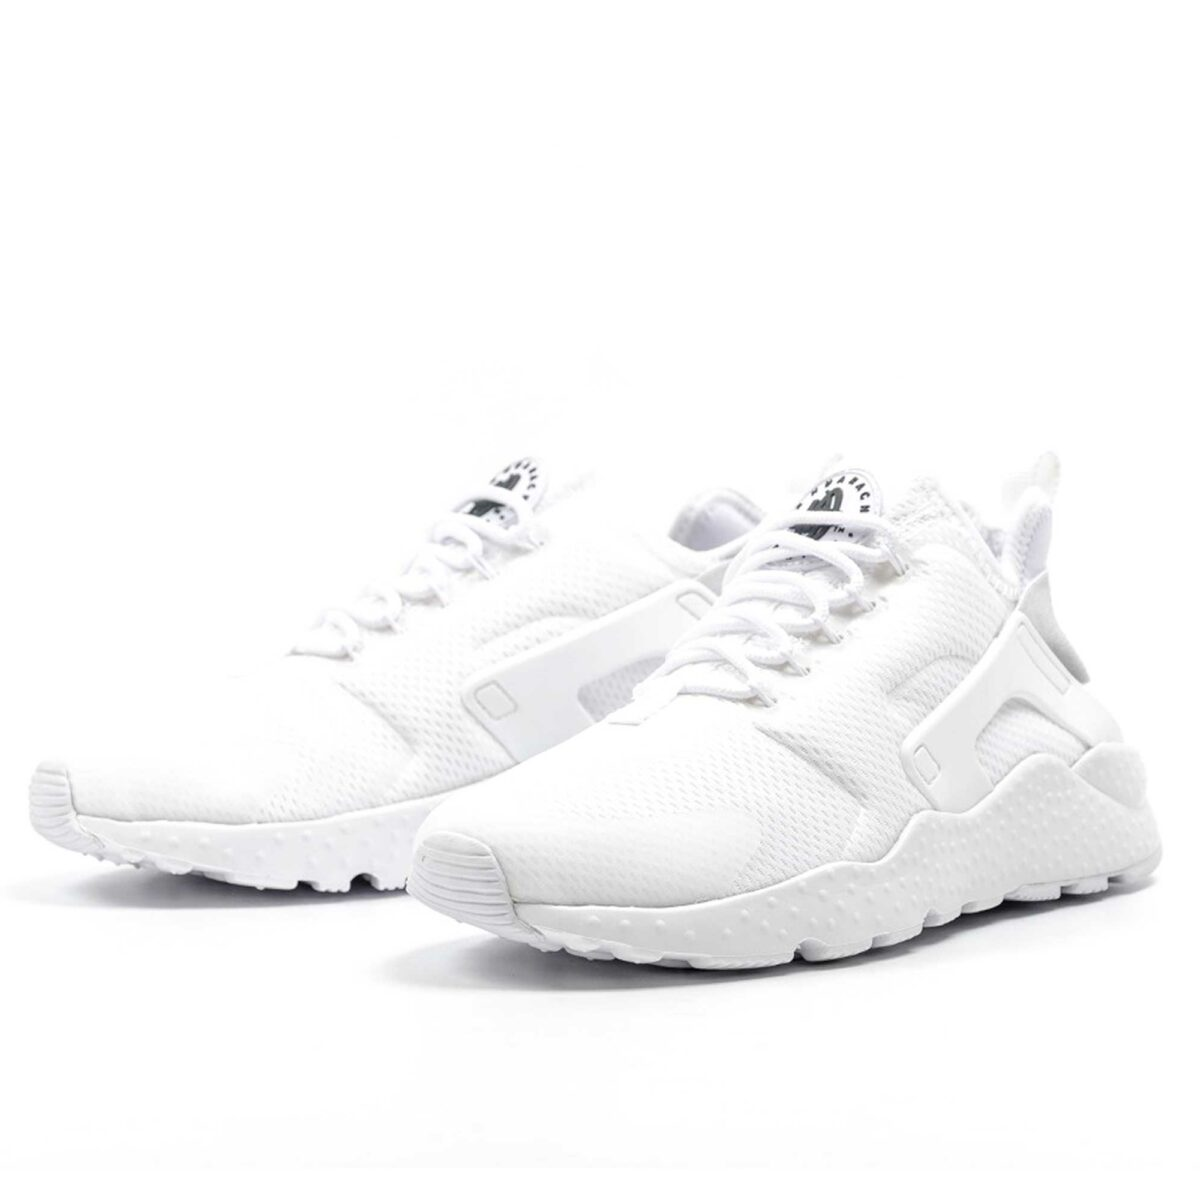 nike air huarache run ultra white 819151_101 купить